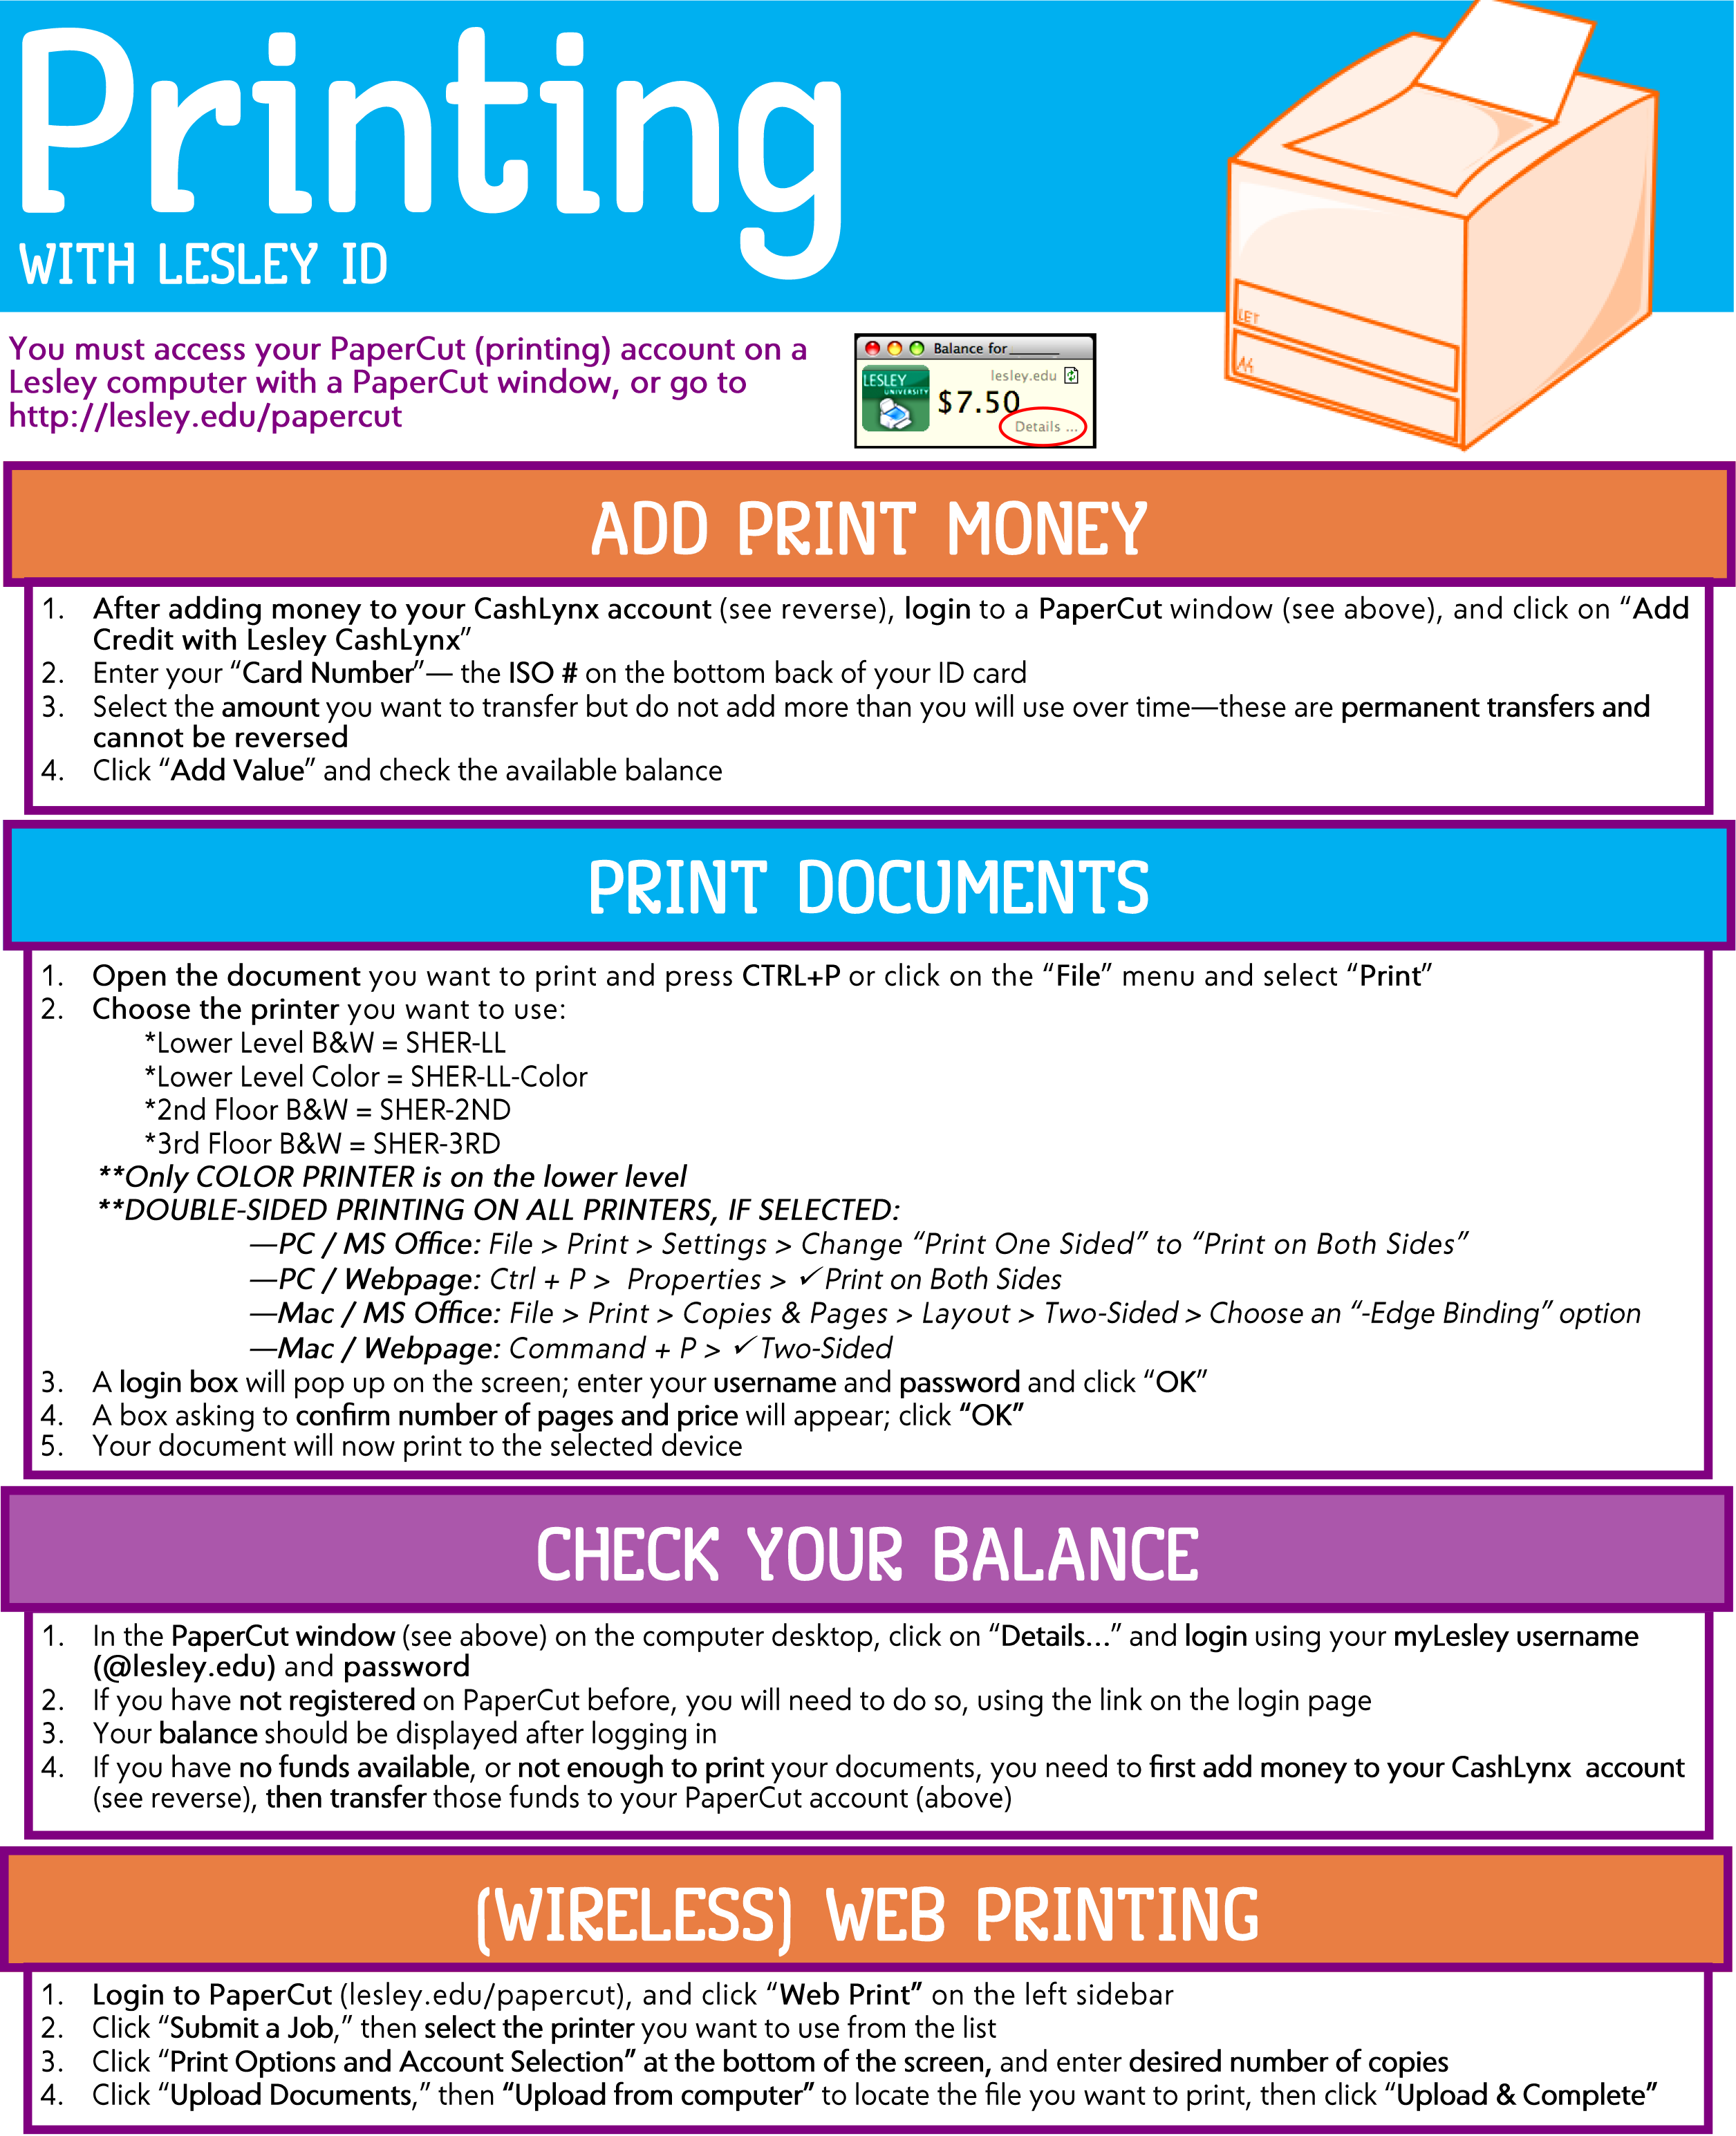 Image is a handout with instructions for Lesley faculty, staff, and students who wish to use the printers. You can receive additional assistance with printing at the Information Desk.